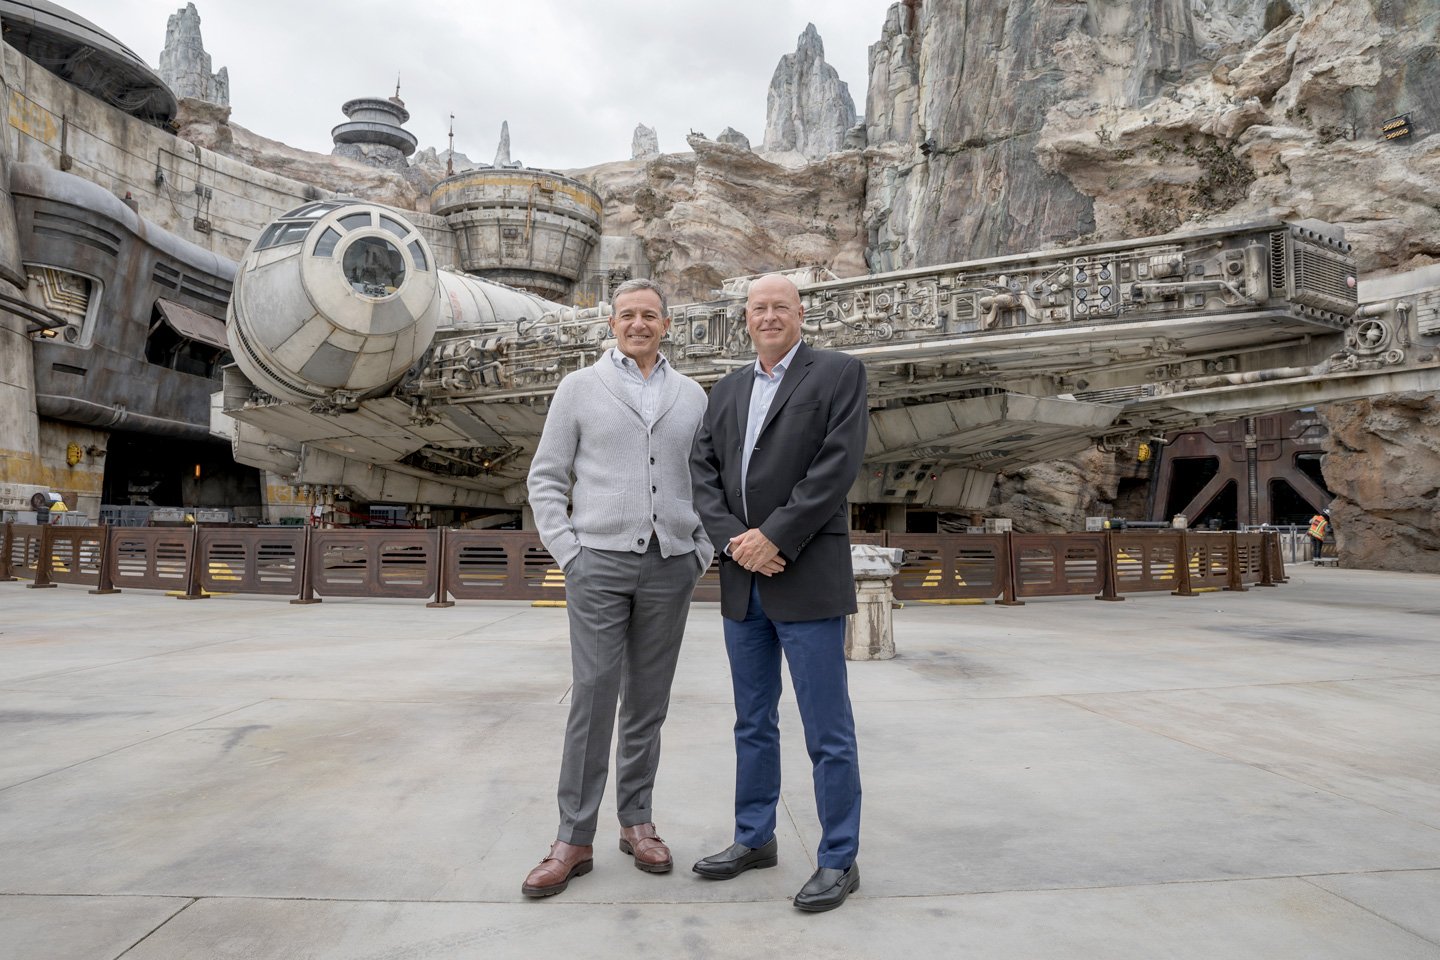 Bob Iger (left) assumes Role of Executive Chairman through 2021, Bob Chapek (right) is the new Disney CEO